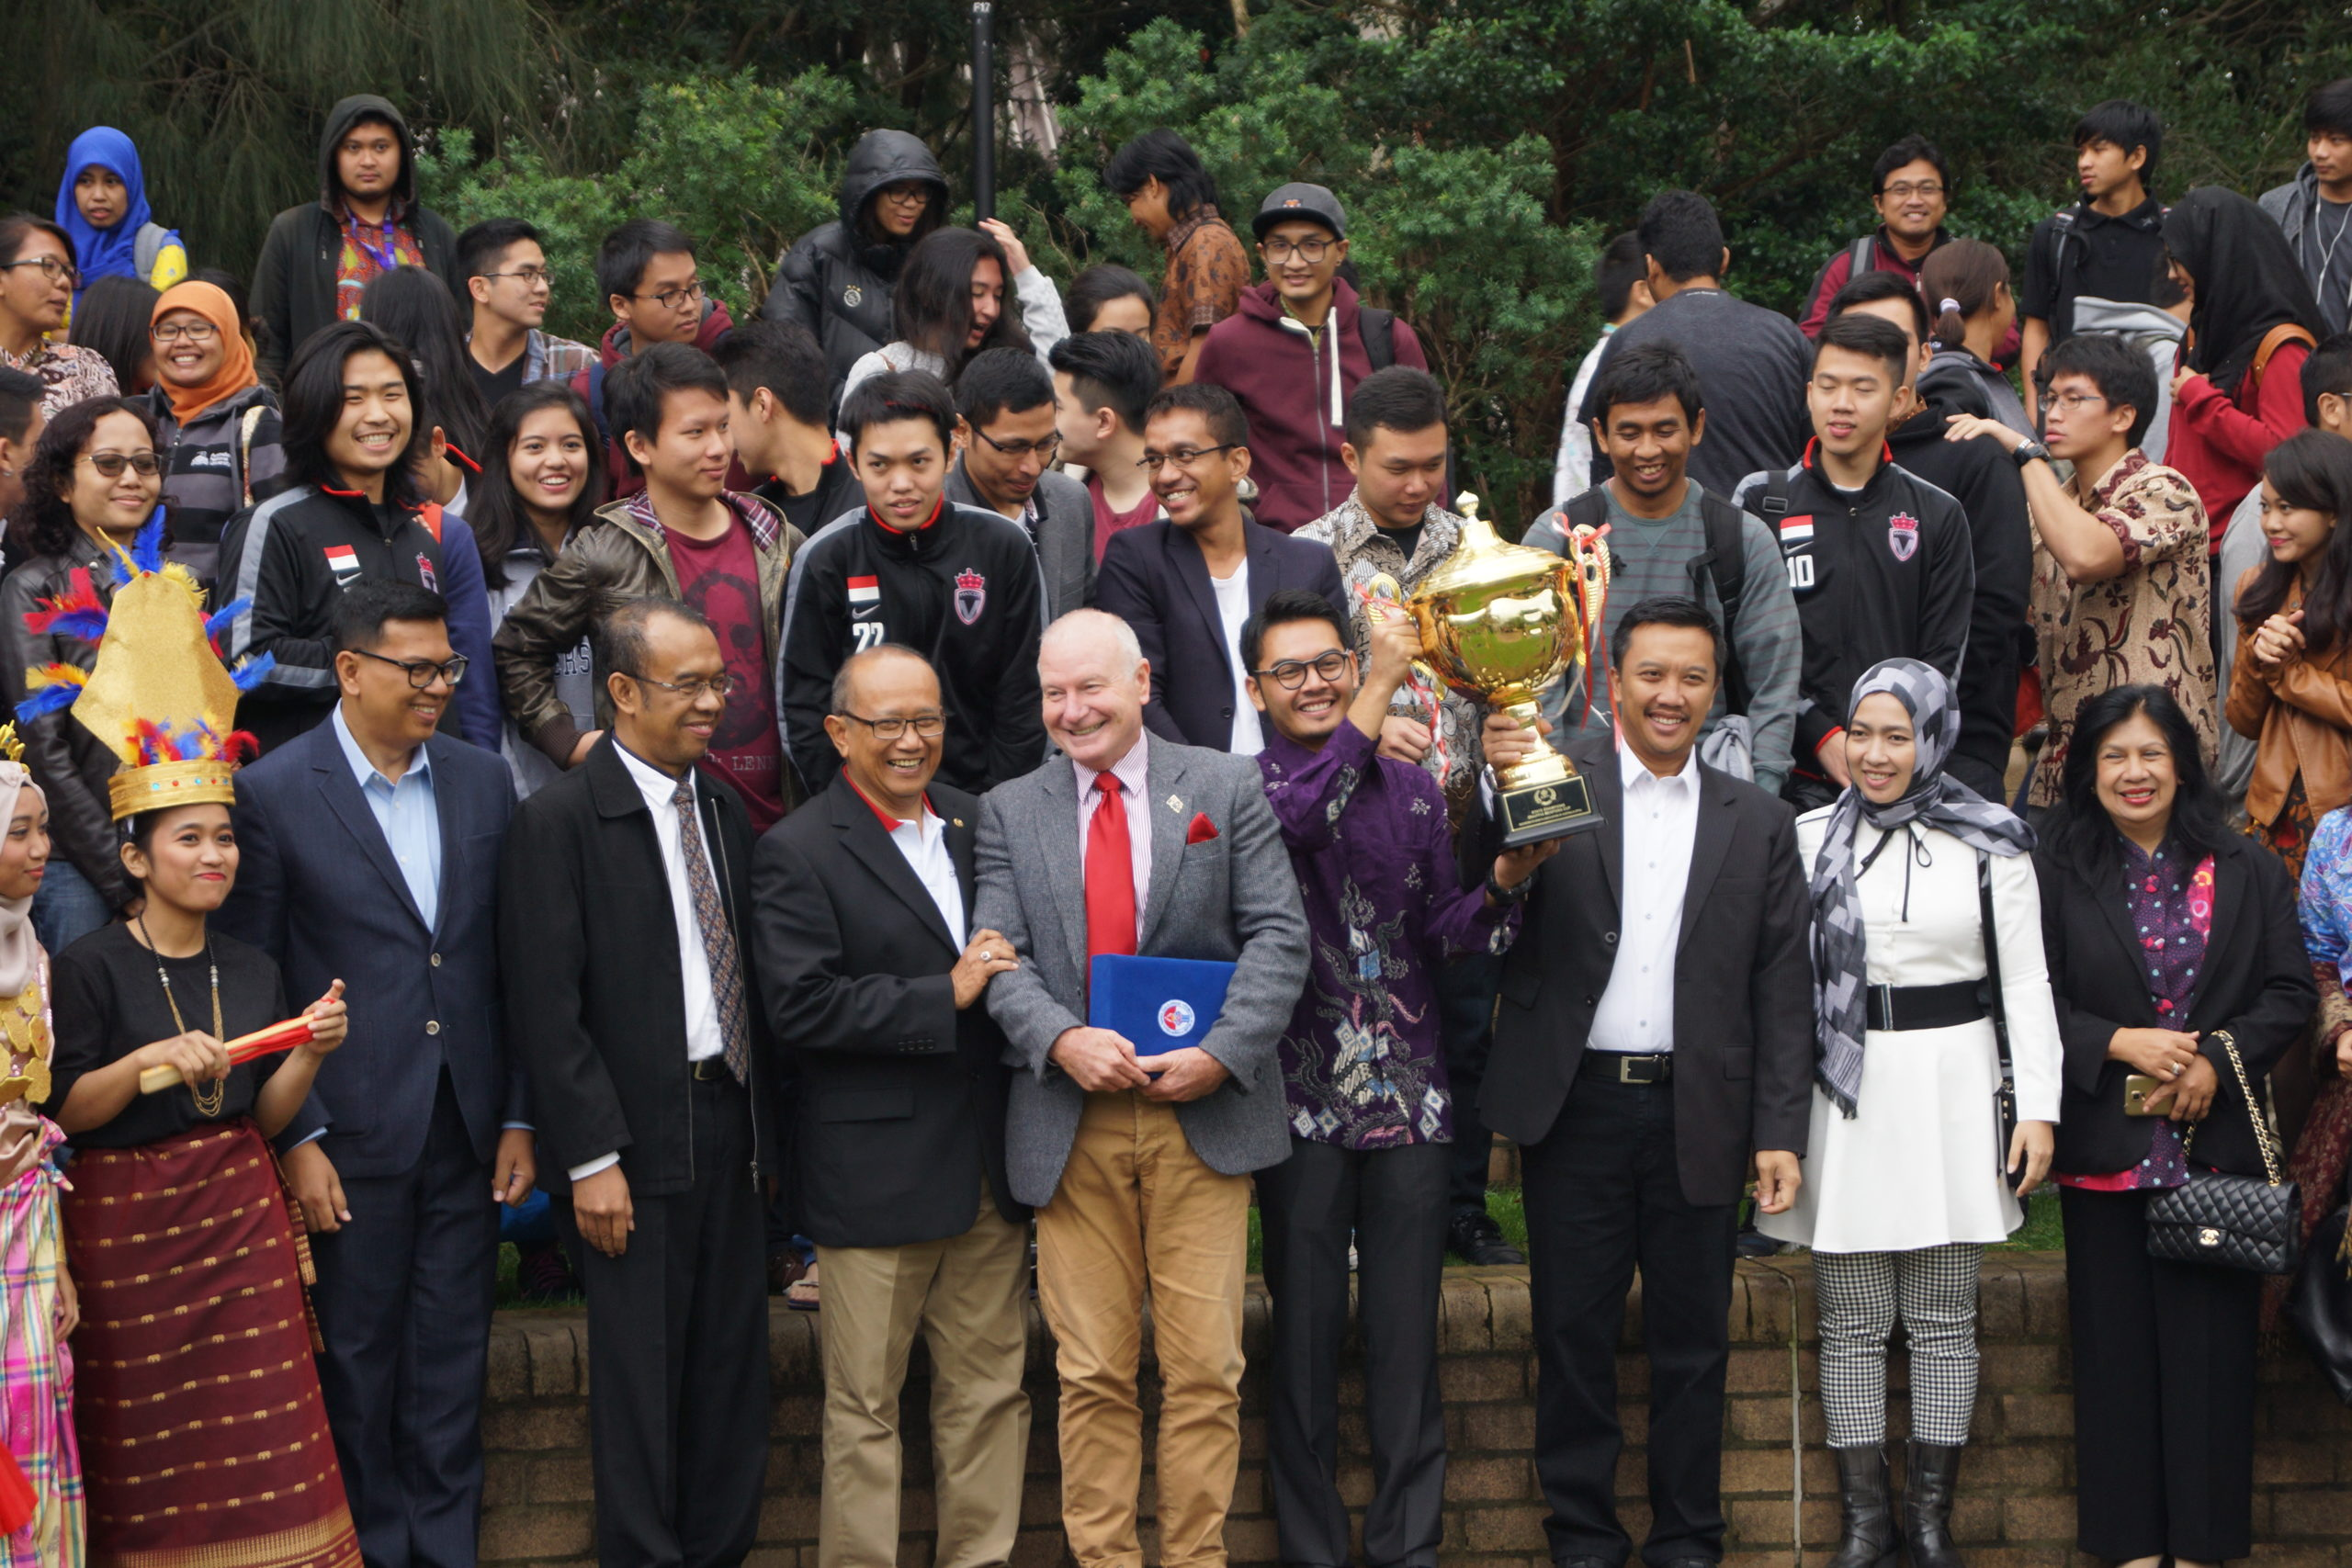 National Indonesian student event hosted at UOW